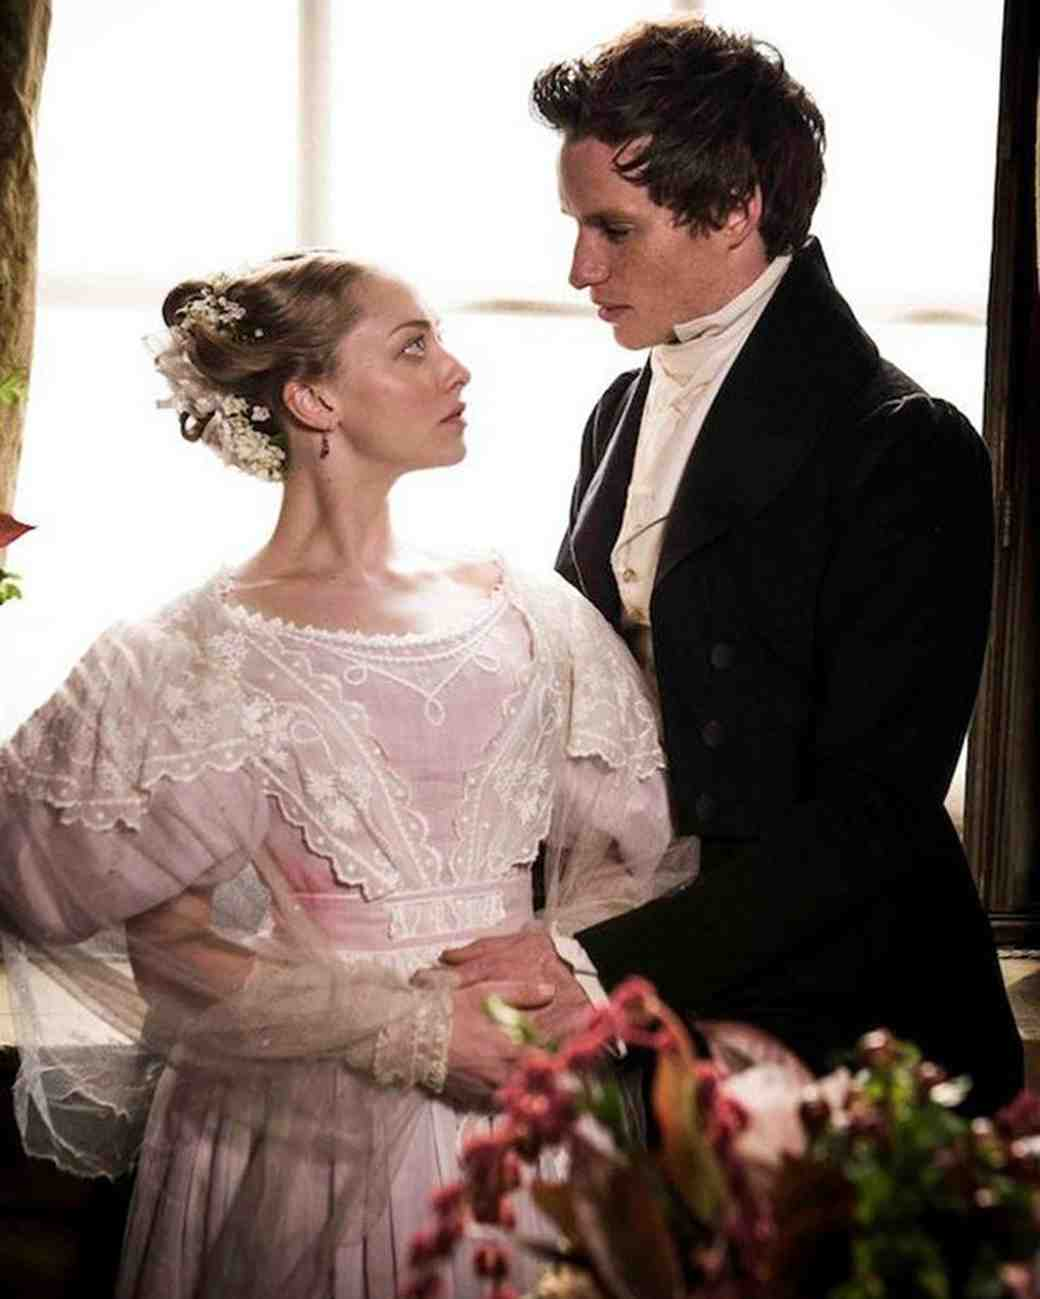 Les Miserables wedding dress